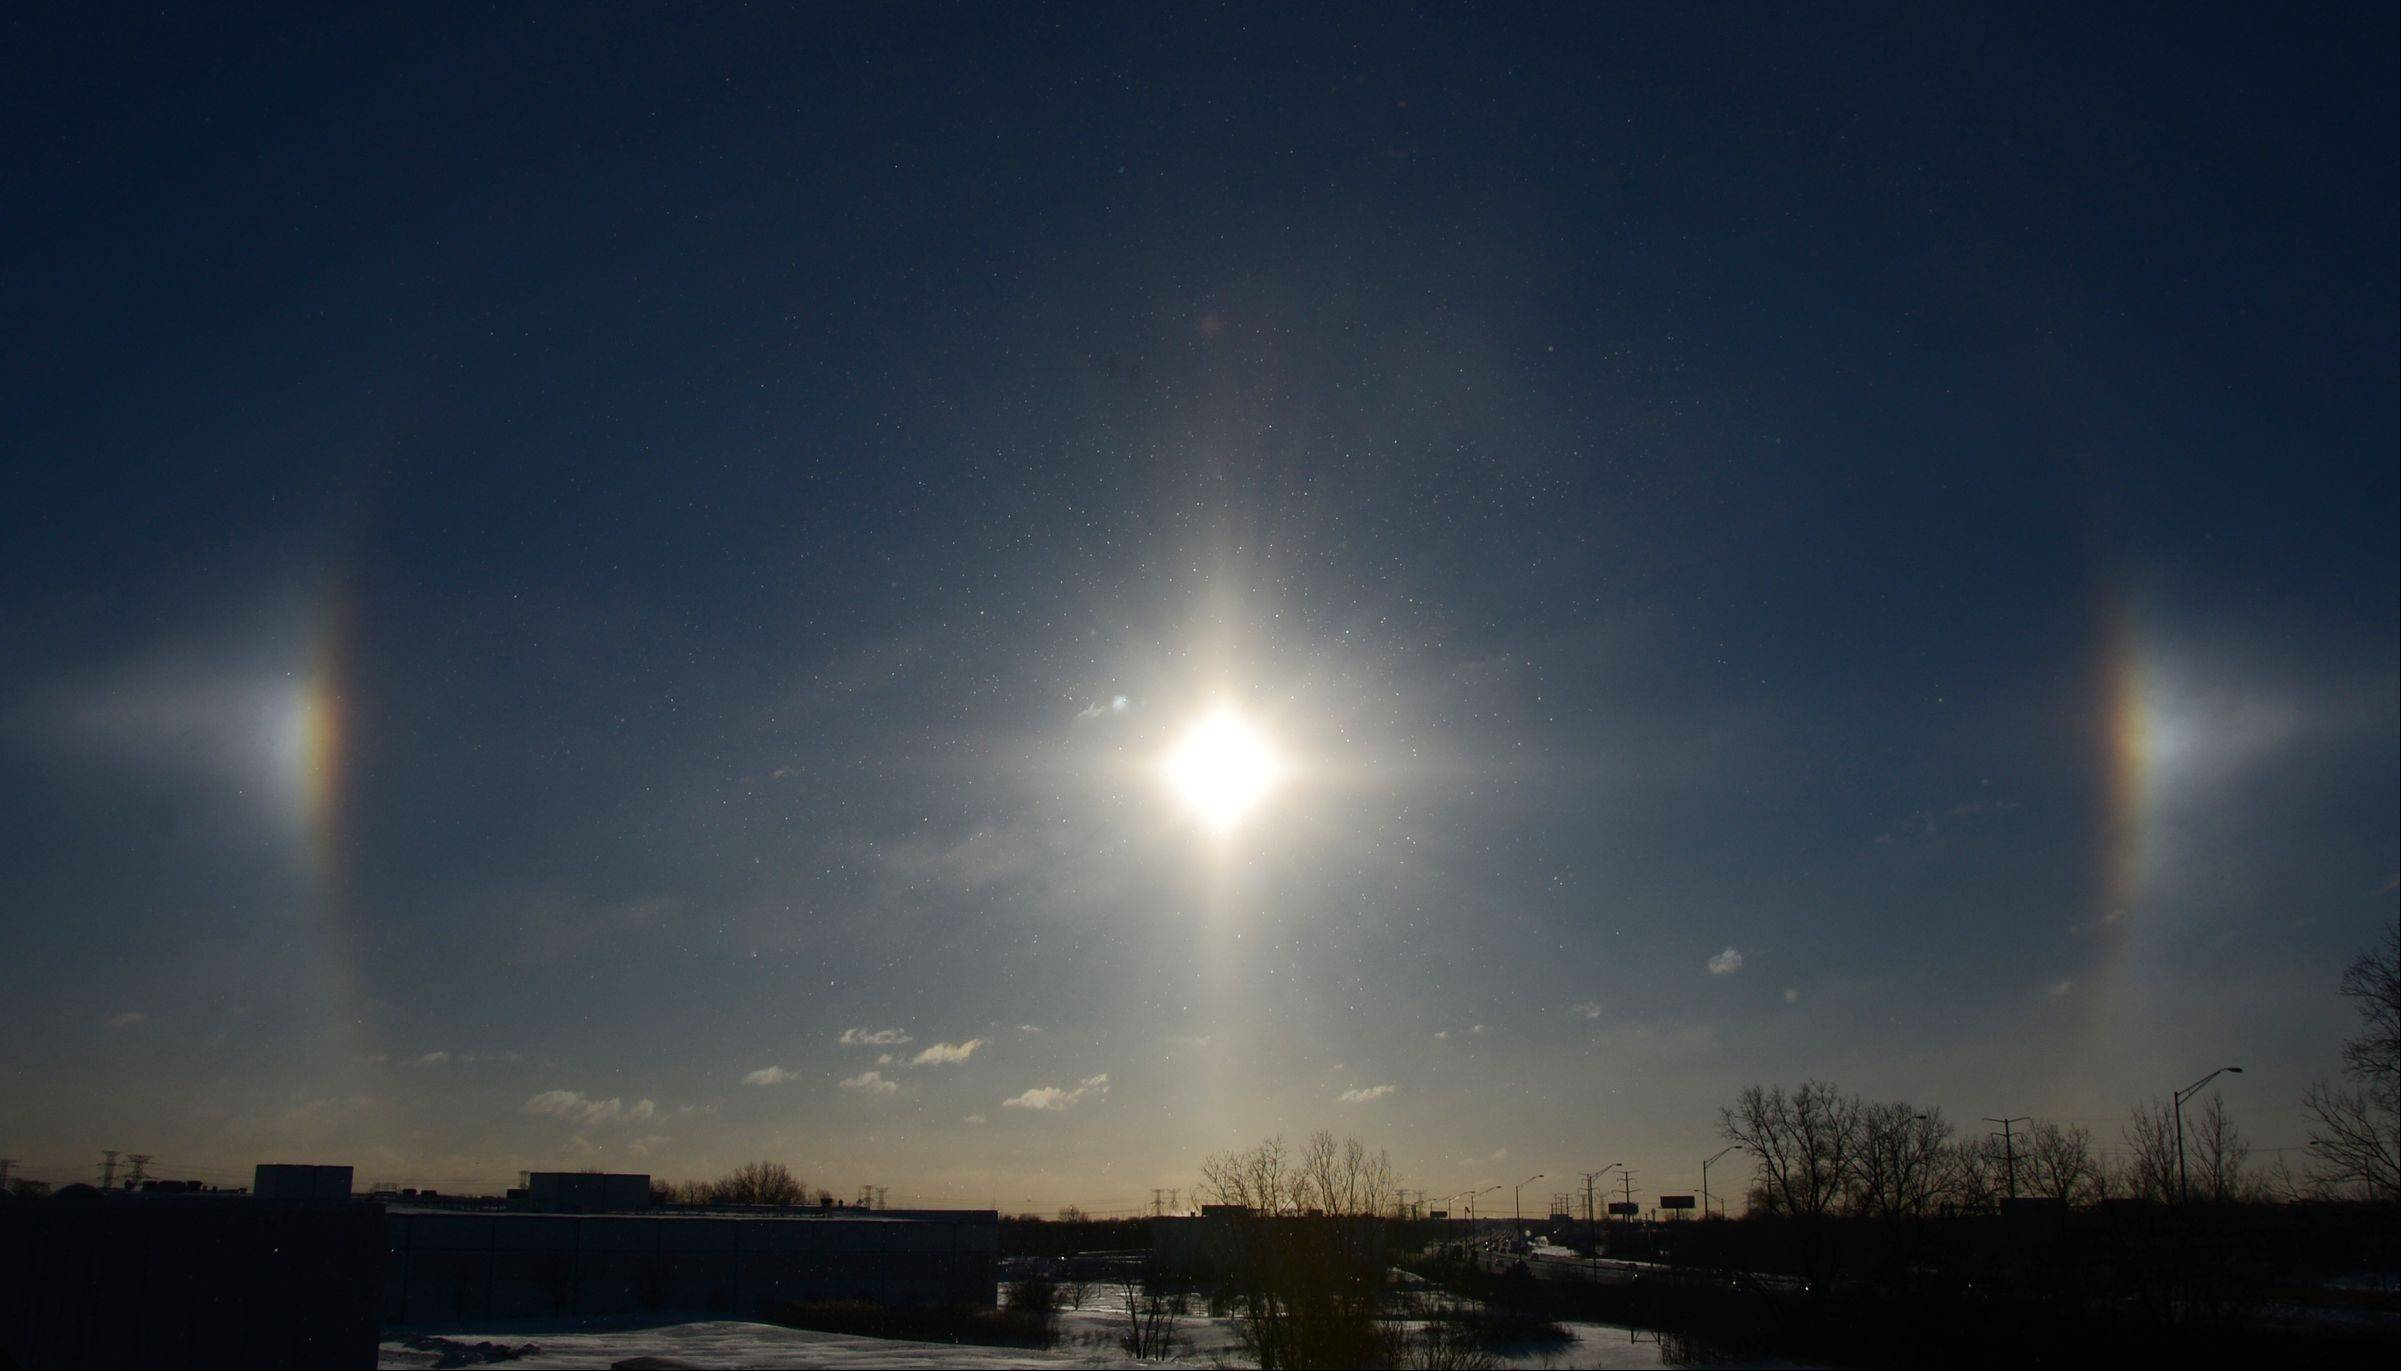 A sun dog is seen over the Jane Addams tollway in Arlington Heights on Monday morning. Sundogs are caused by sunlight passing through ice crystals in the upper atmosphere.